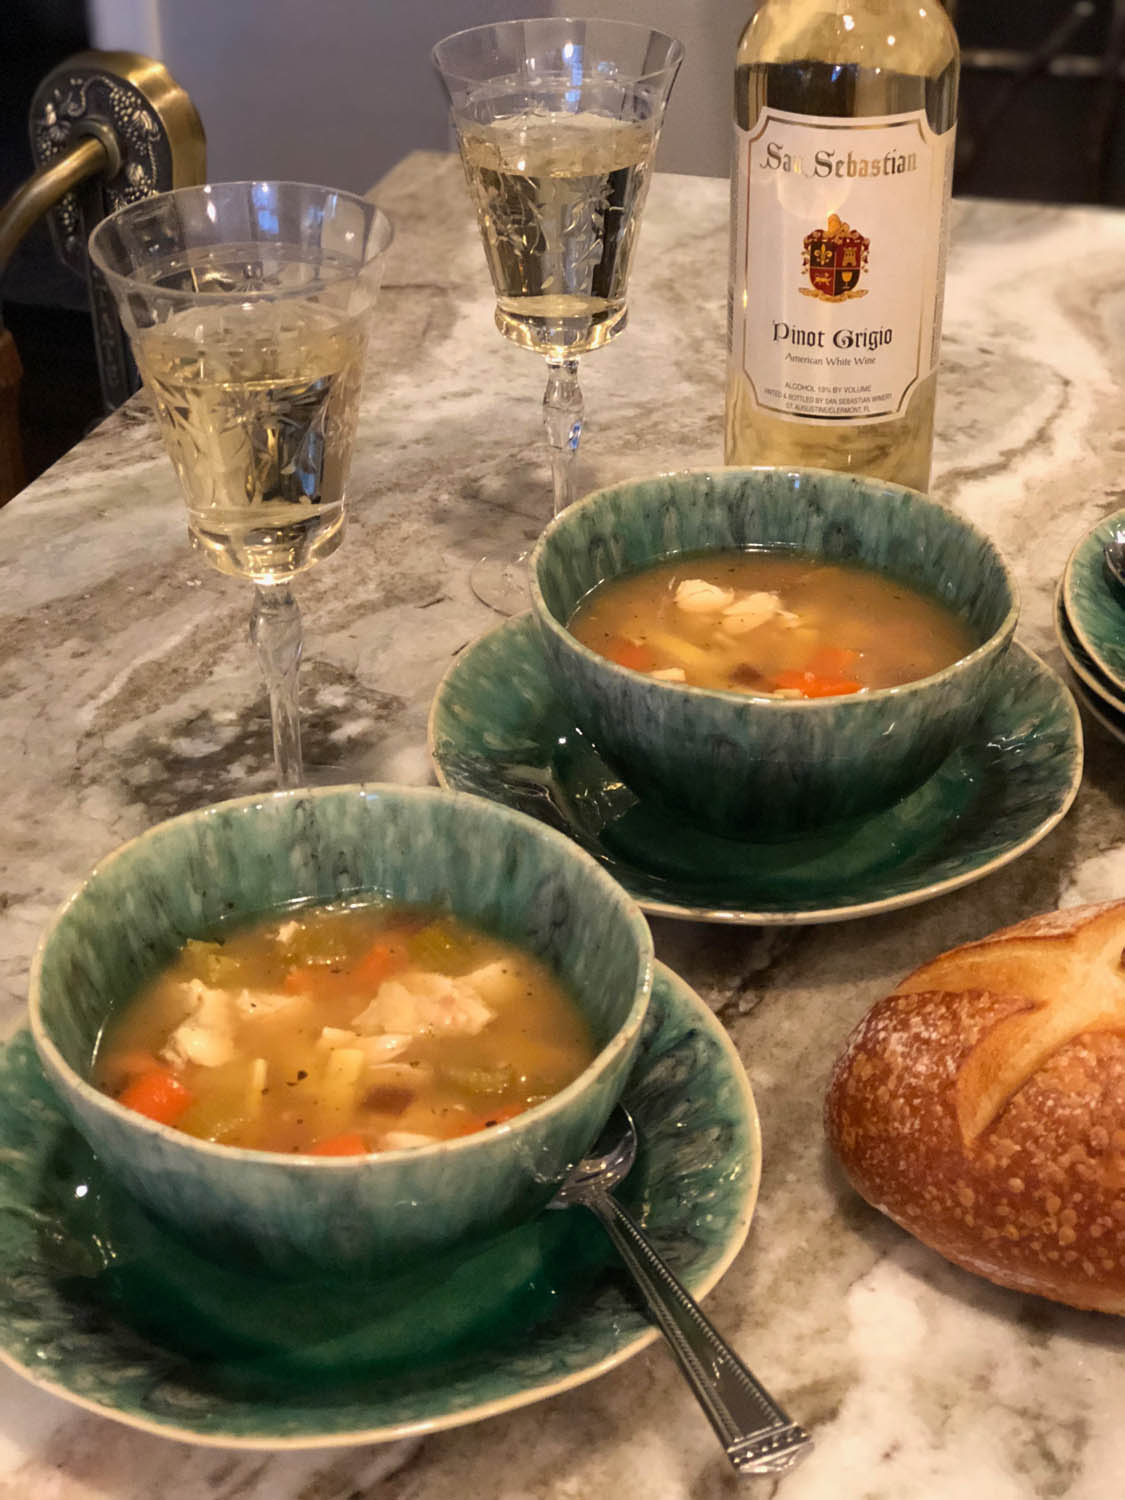 Marble counter set with homemade chicken noodle soup served in bowls and French bread and San Sebastian Pinot Grigio wine.